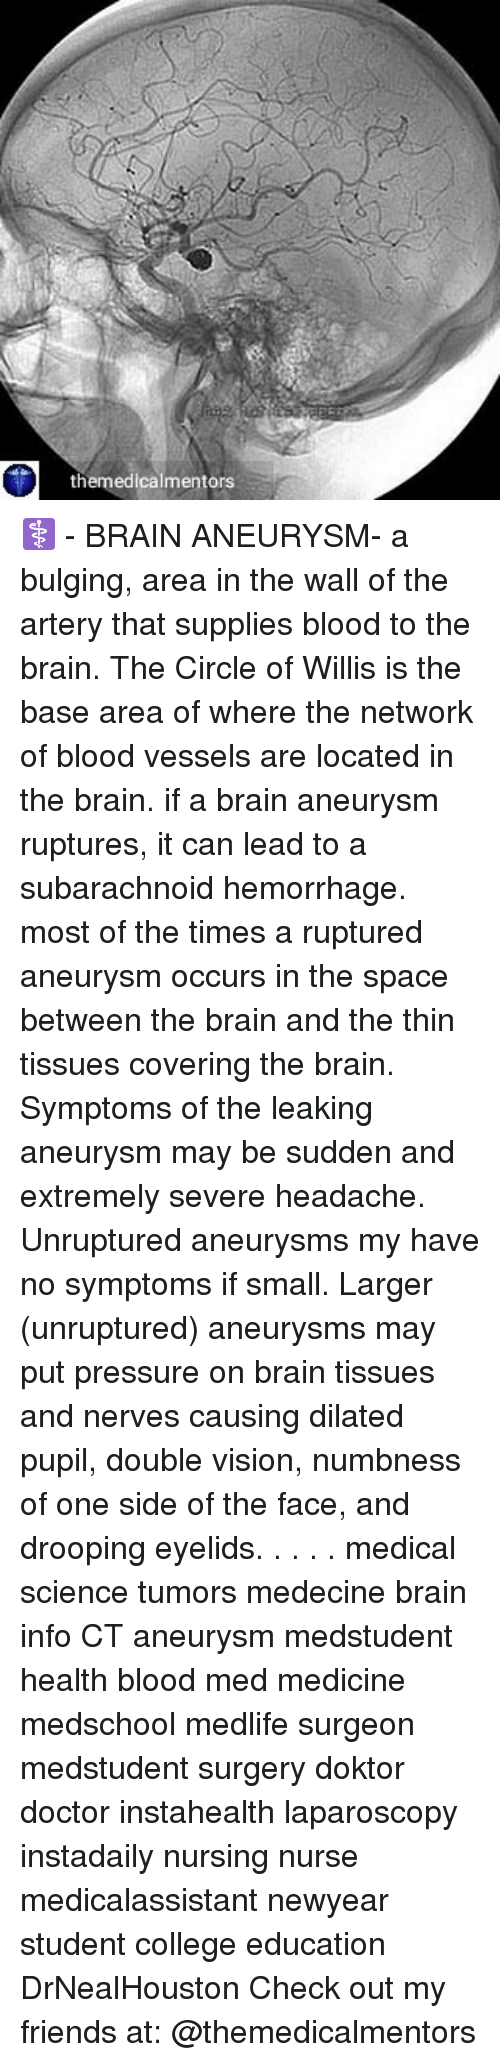 a description of brain aneurysm a bulge formed by the ballooning of the wall of an artery or a vein (brain aneurysm) varicose aneurysm one formed by rupture of an aneurysm into a vein saccular aneurysm sac-like ballooning of an artery wall aneurysm.